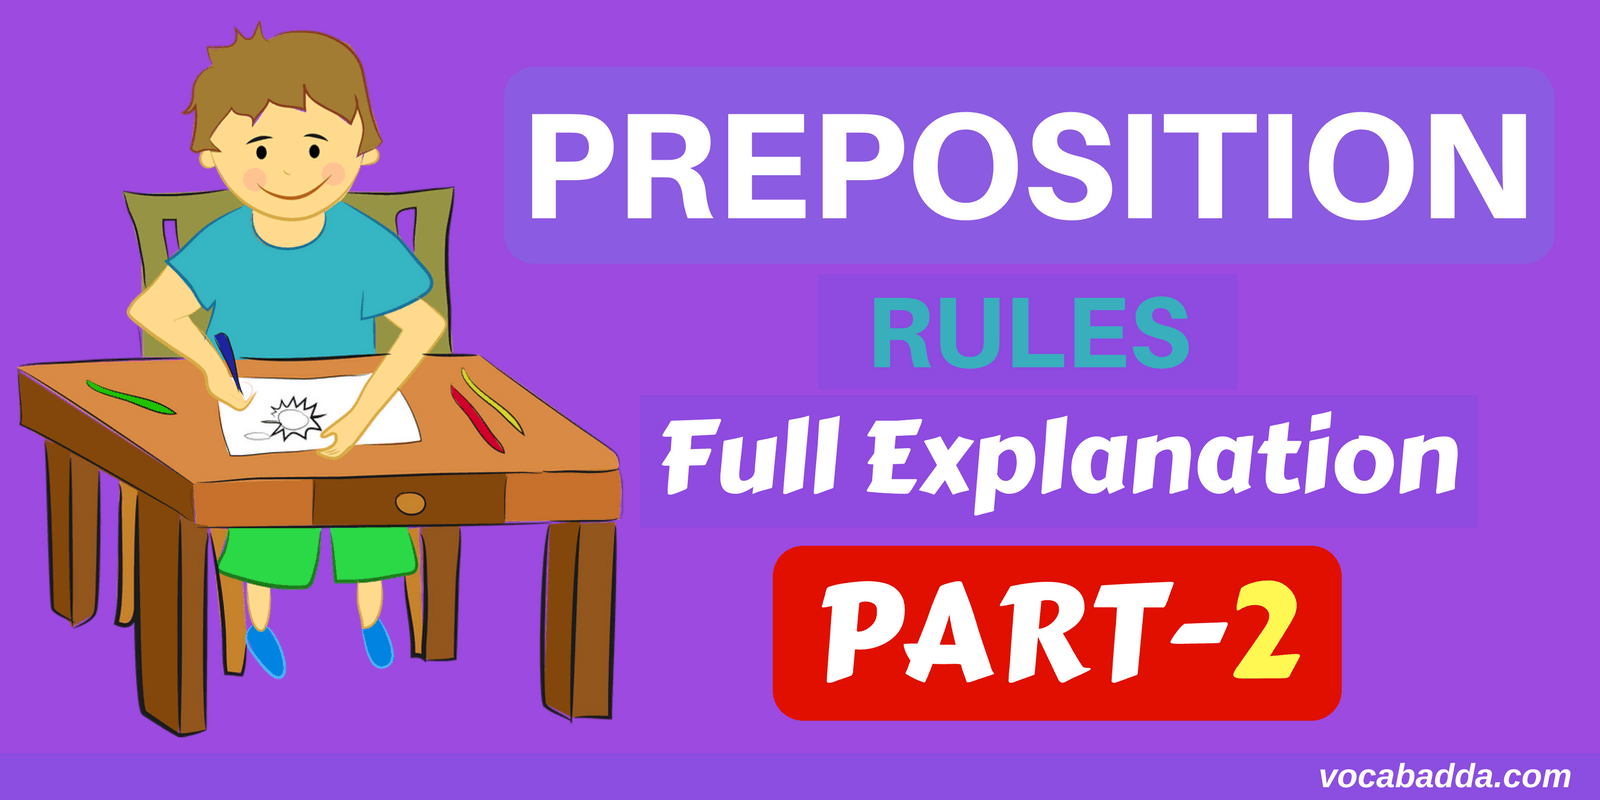 Preposition Rules